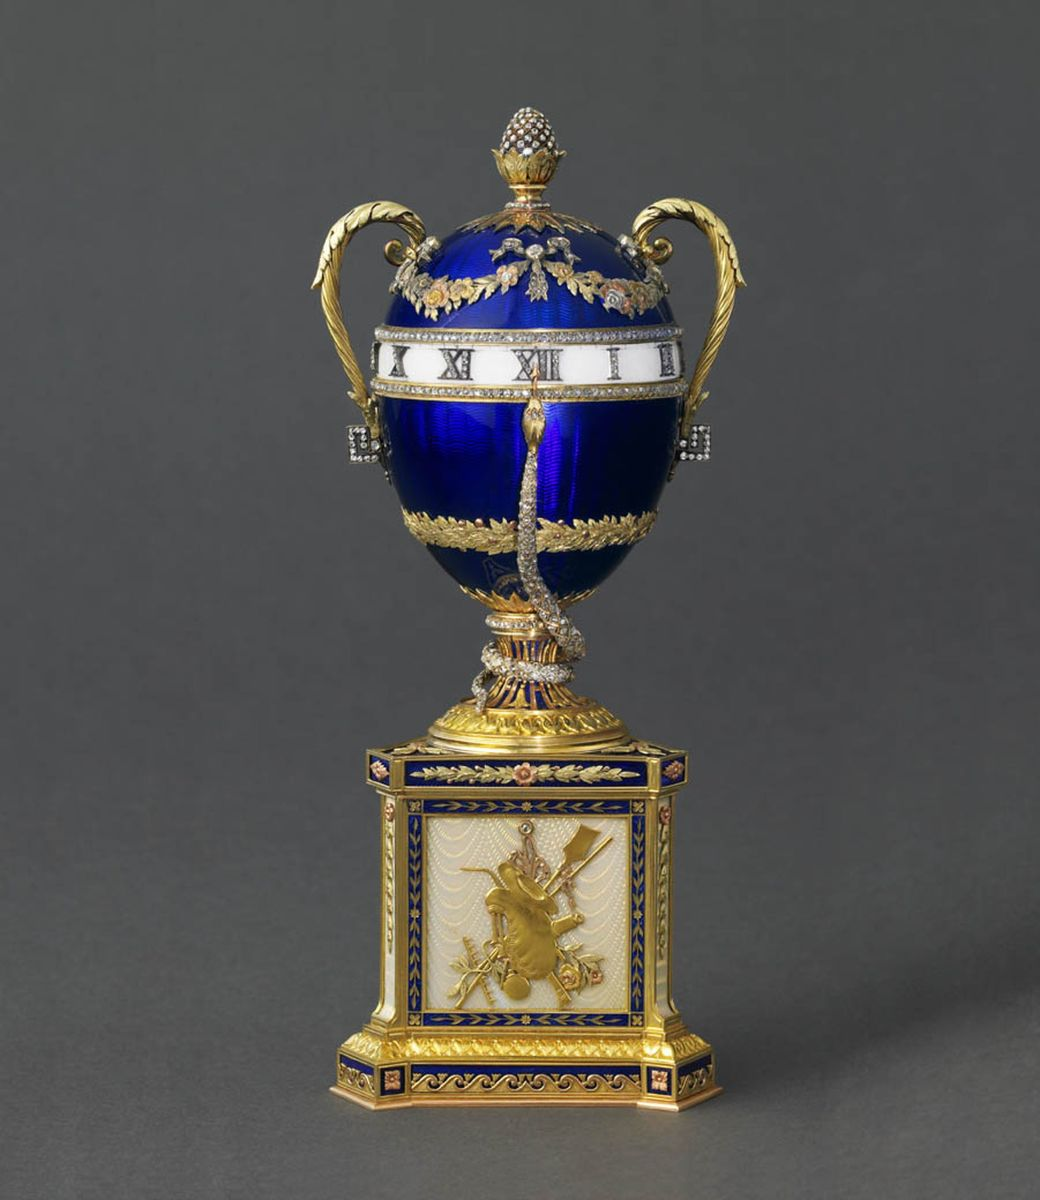 Blue Serpent clock Egg ( The First Egg from Tsar Nicholas to his Mother Maria)  - 1895